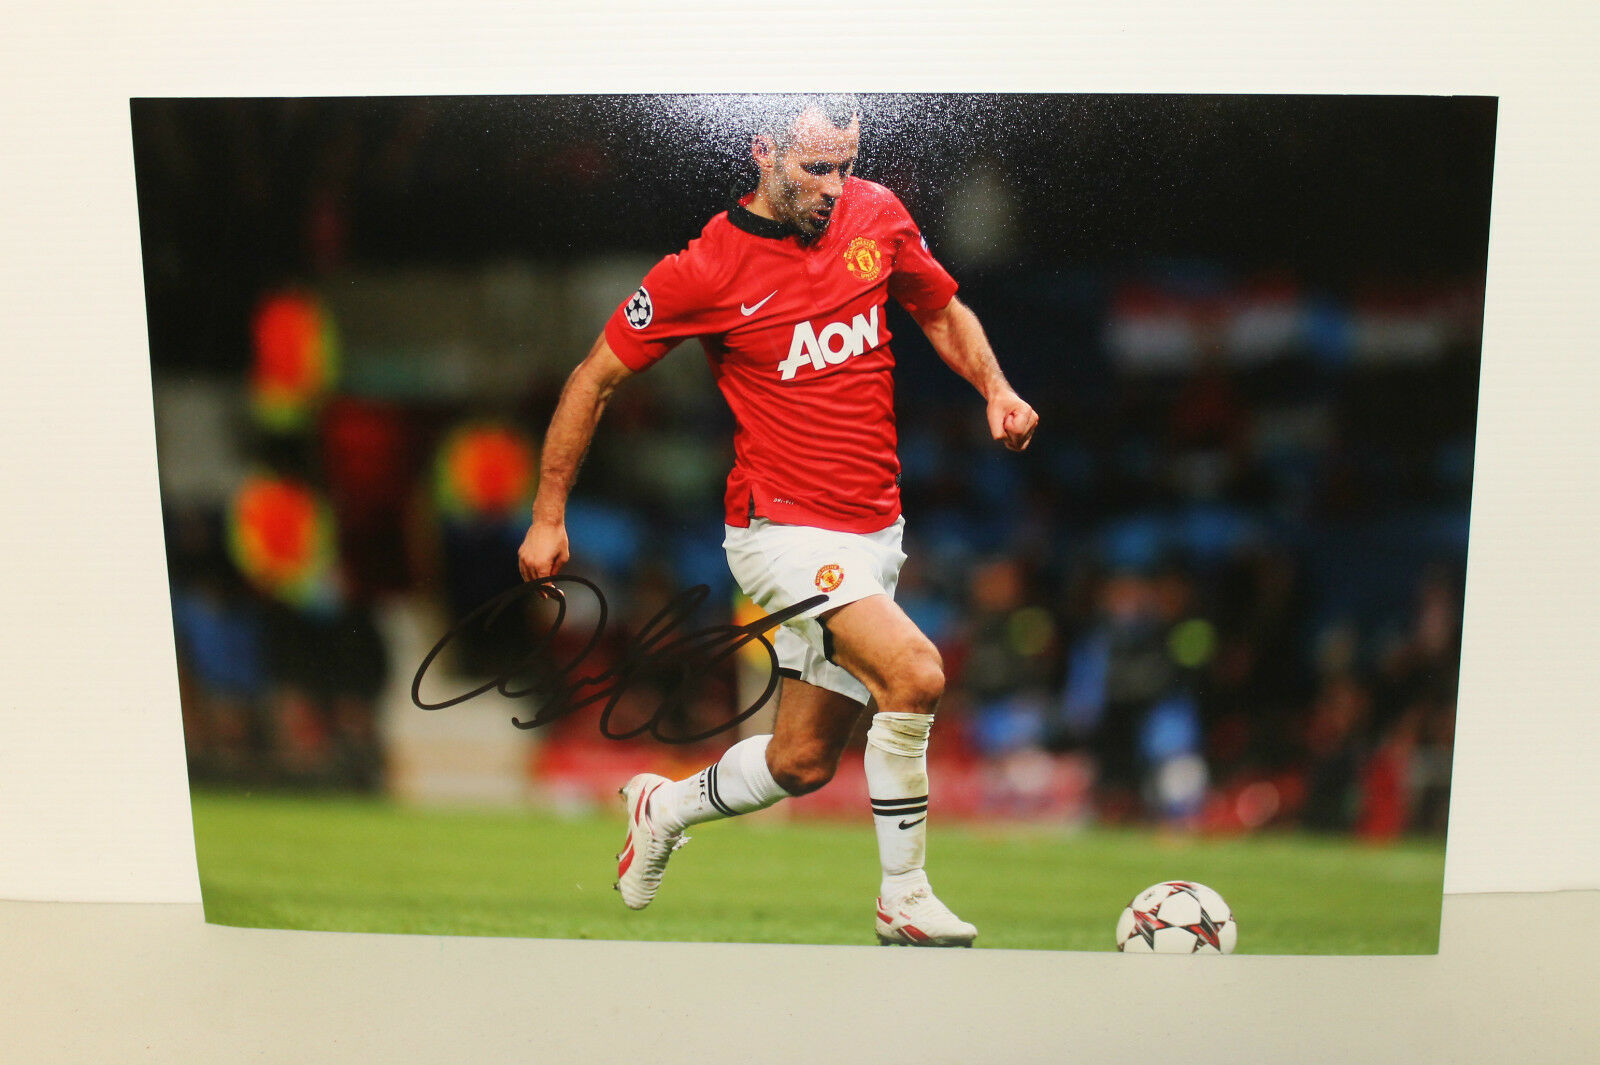 RYAN GIGGS HAND SIGNED 8x12 PHOTOGRAPH UNFRAMED + PHOTO PROOF & C.O.A